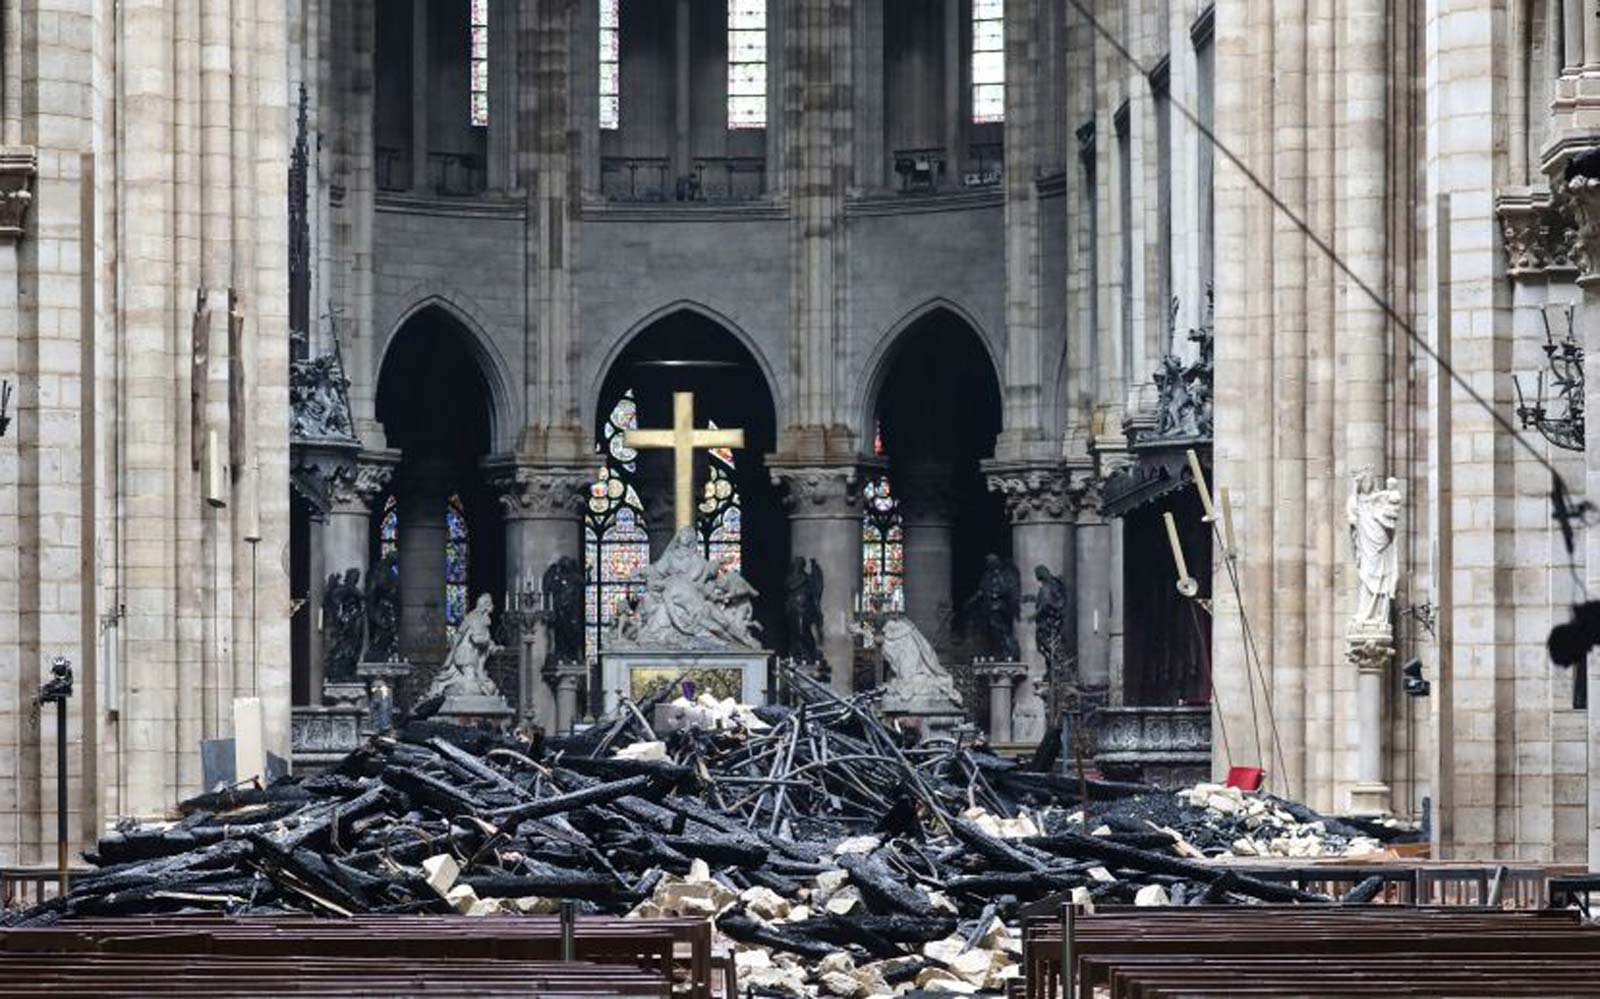 'Hero' Priest Helped Save Artifacts From Notre Dame: 'He Showed No Fear' Amid Blaze